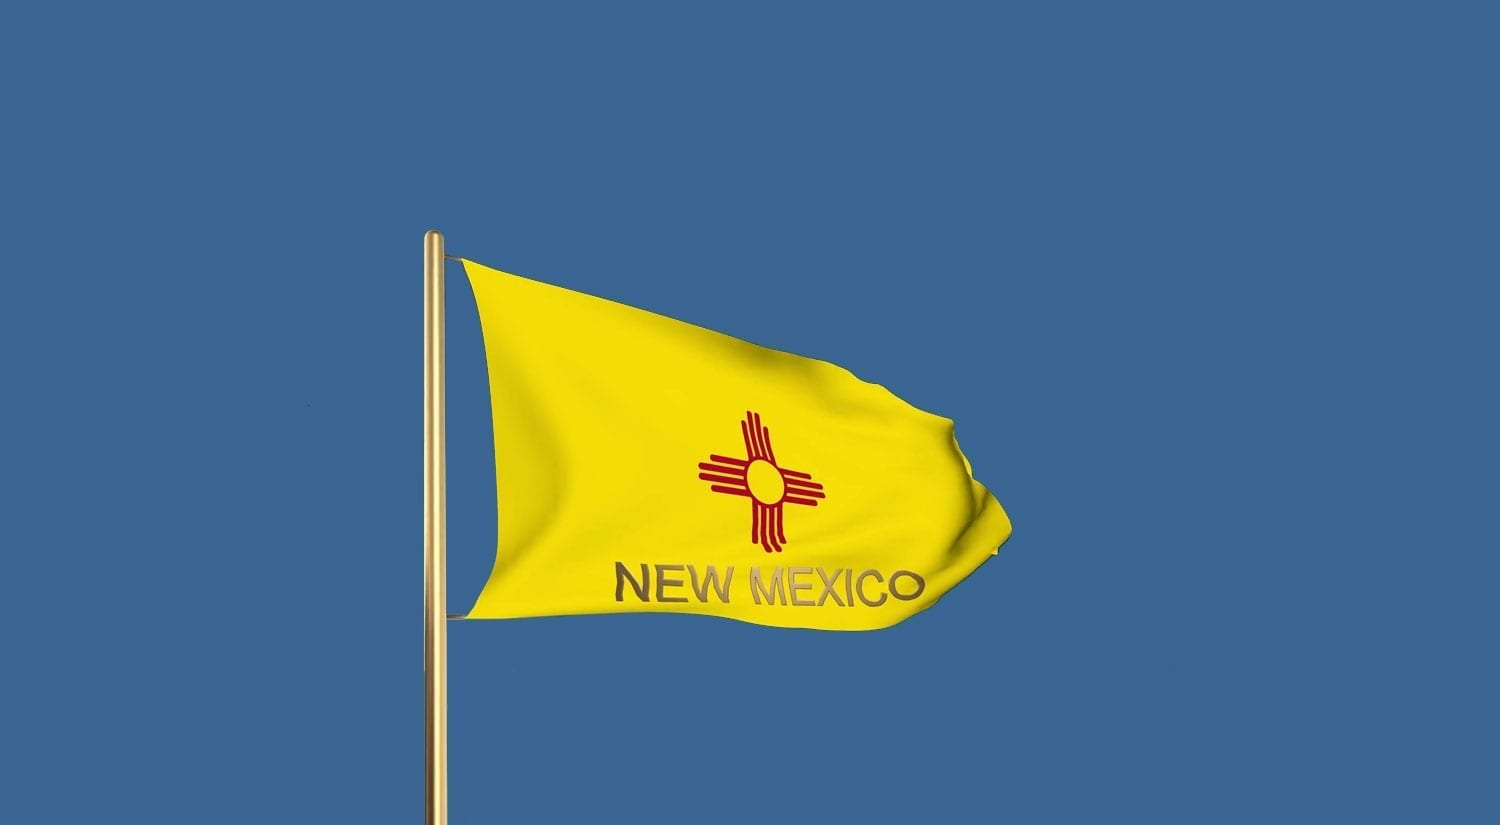 new mexico cle requirements